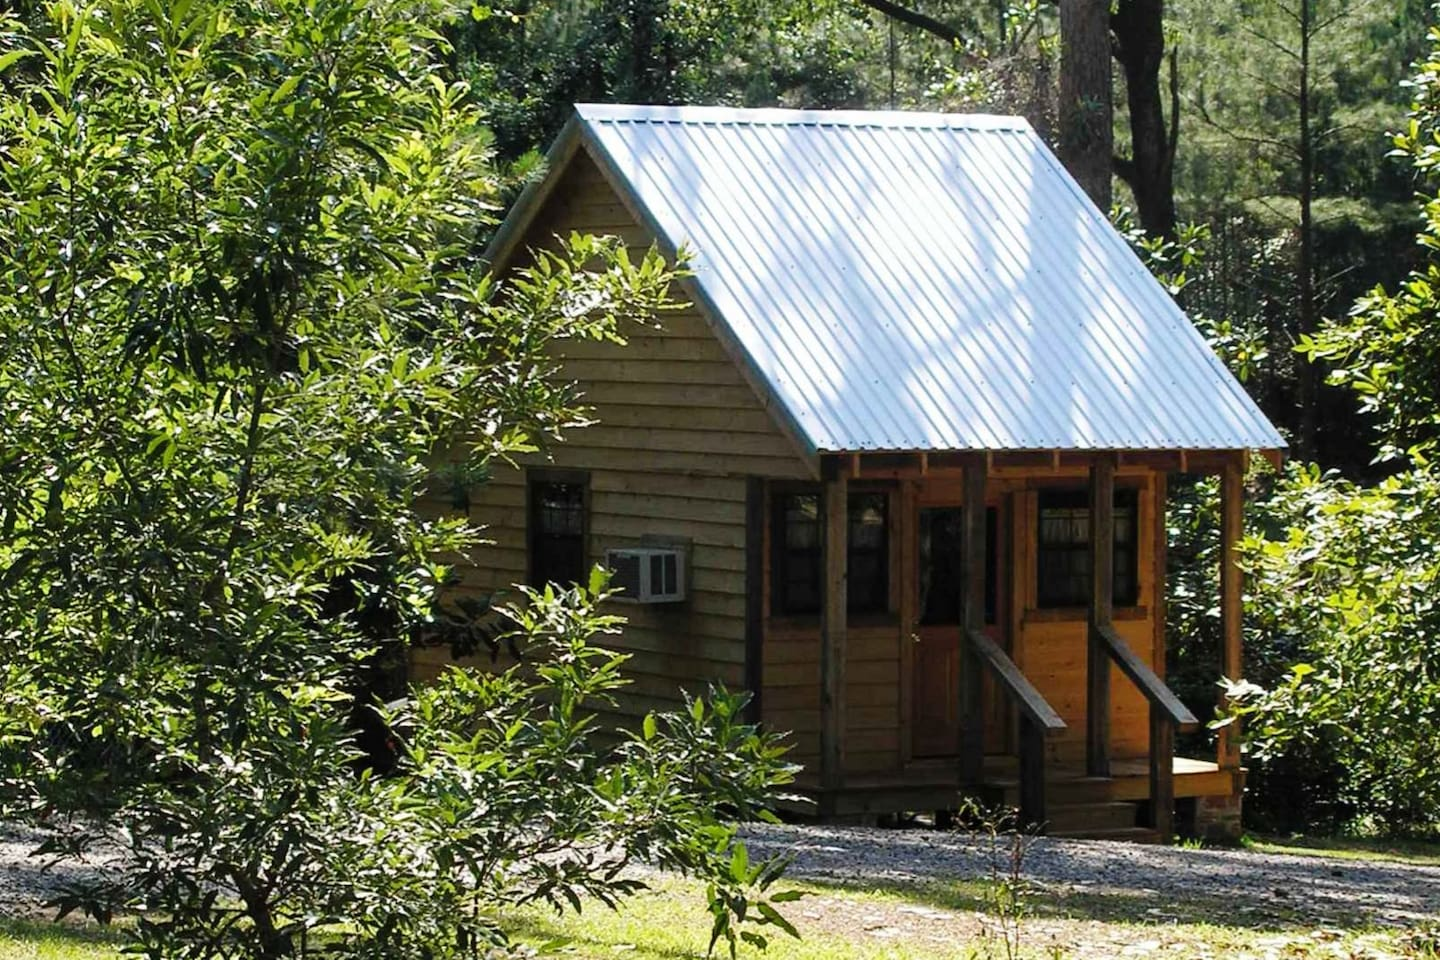 When you stay at Magnolia Cabin, we are sharing our quiet retreat with you.  A great stay for individuals, couples and families -- come to enjoy the outdoors on property or at nearby Kincaid Lake and Kisatchie National Forest.